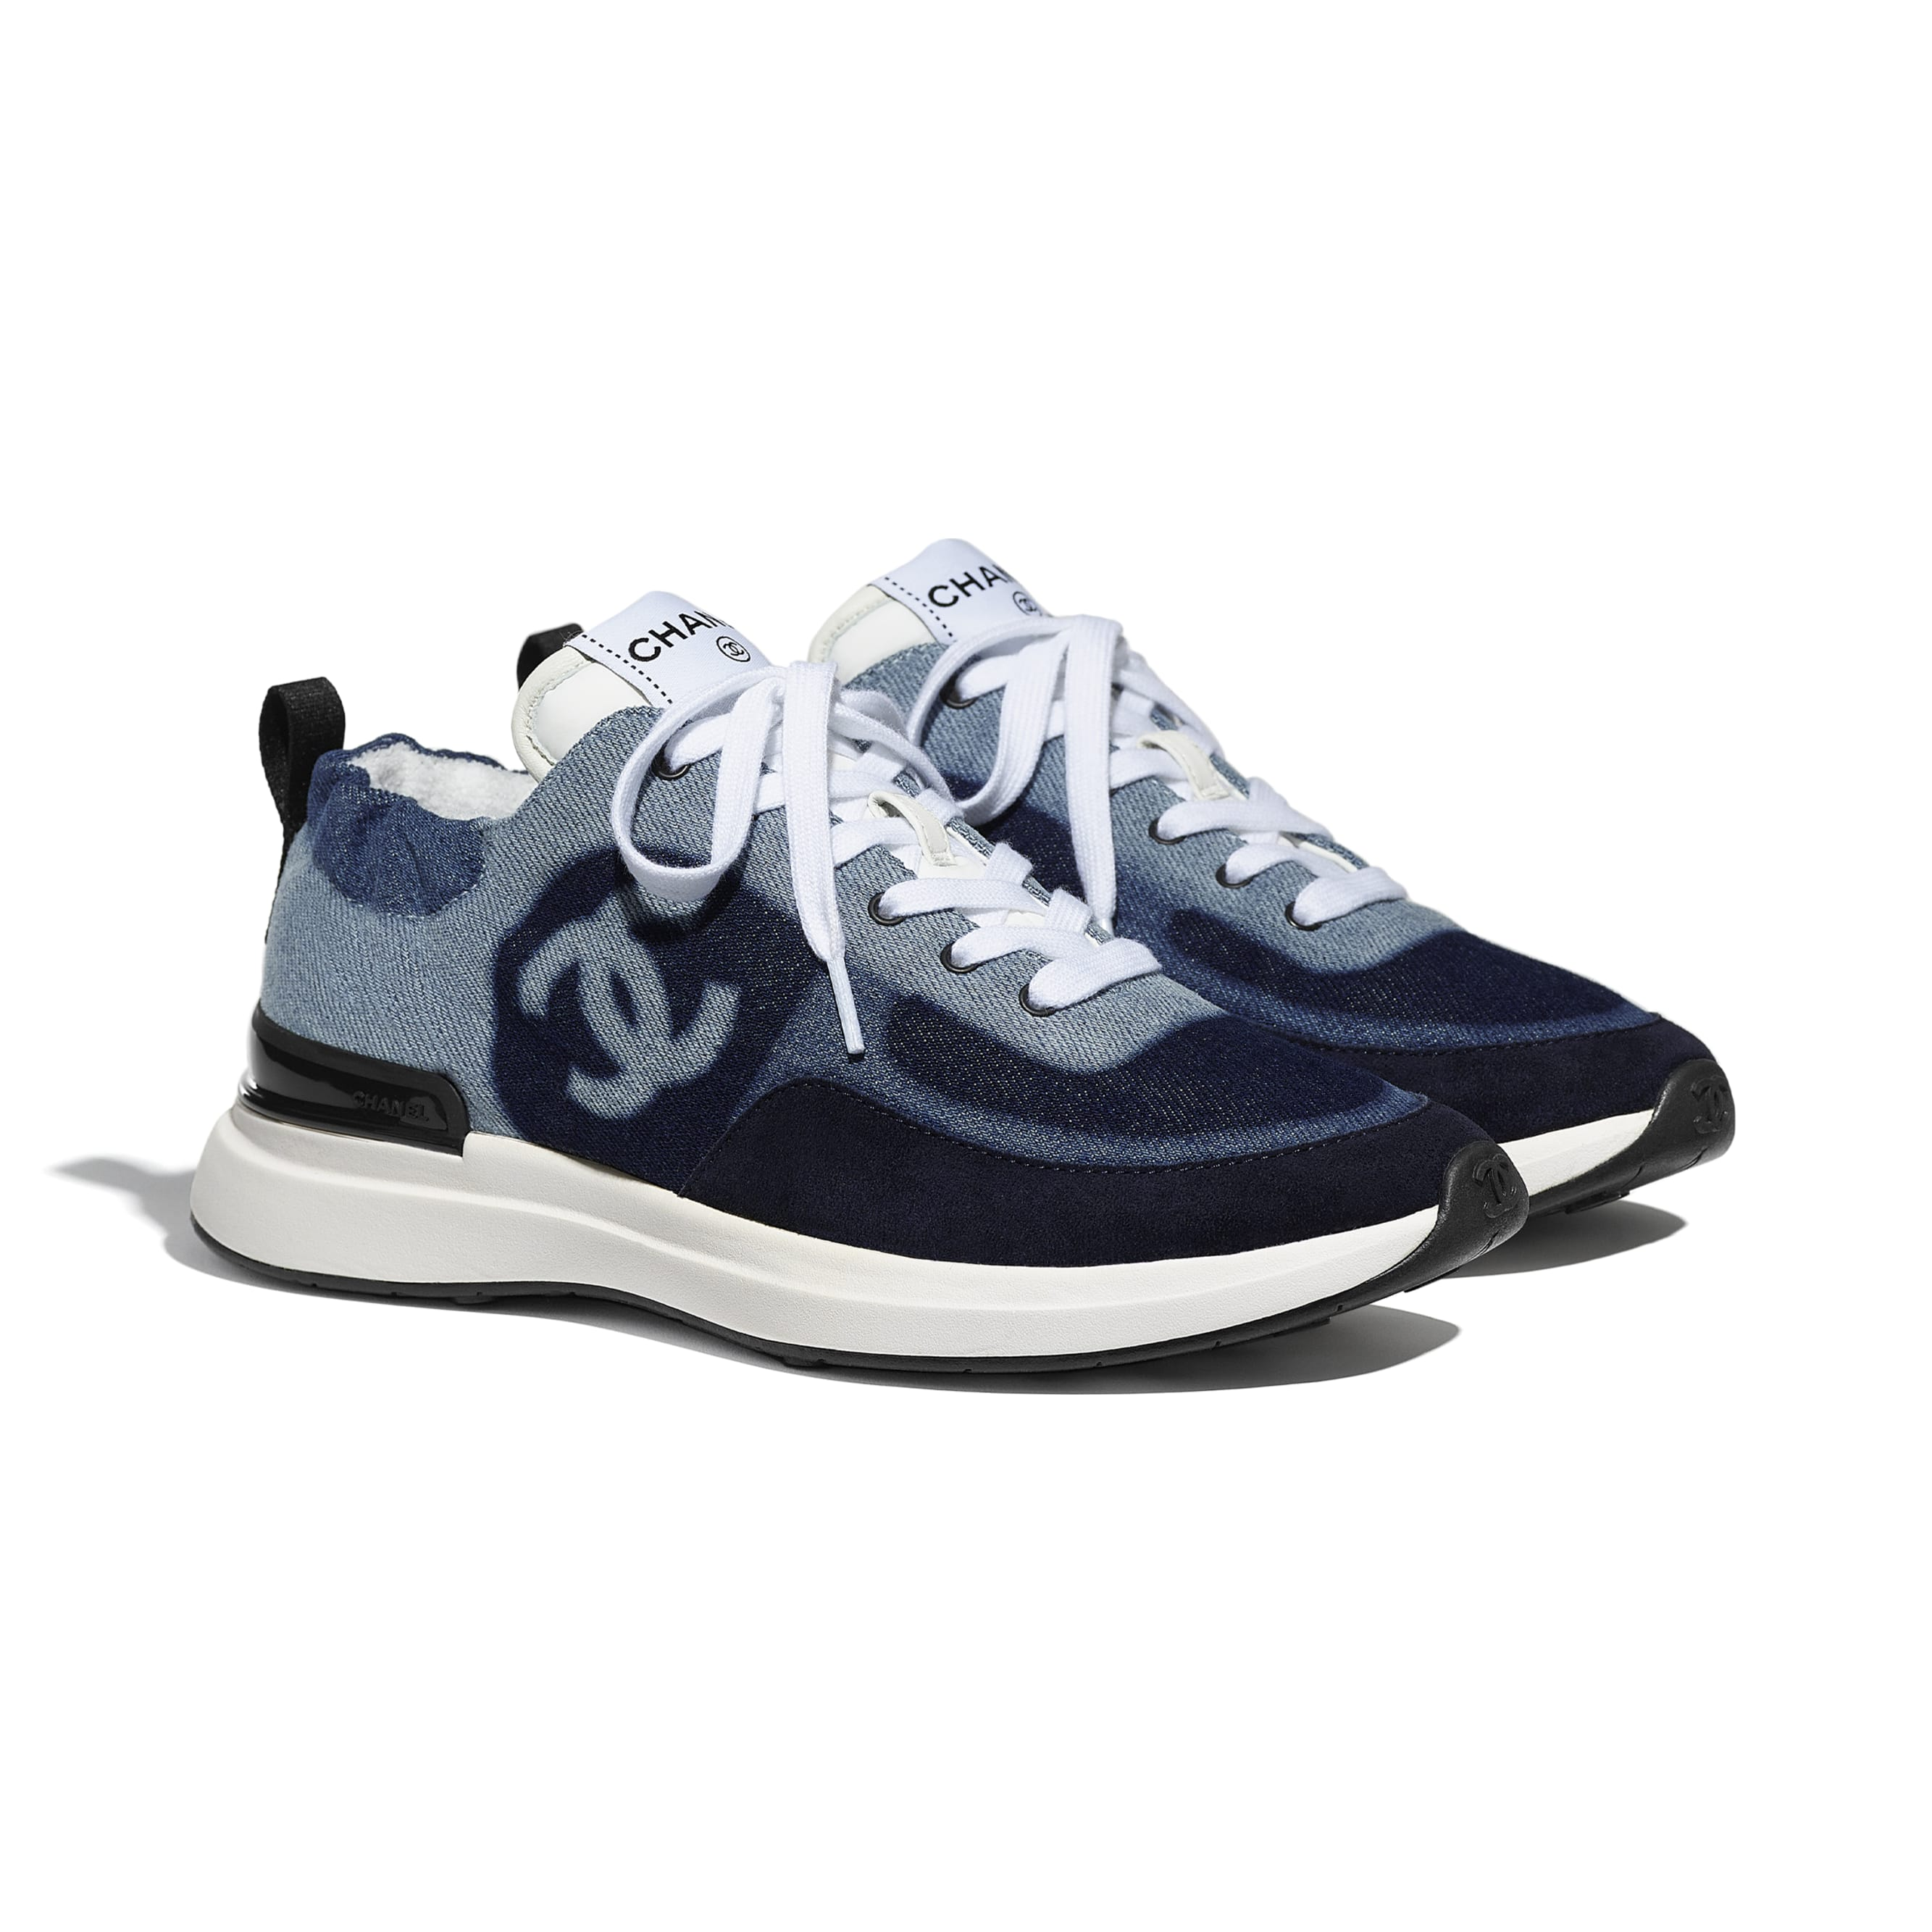 Trainers - Blue - Denim & Suede Calfskin - CHANEL - Alternative view - see standard sized version